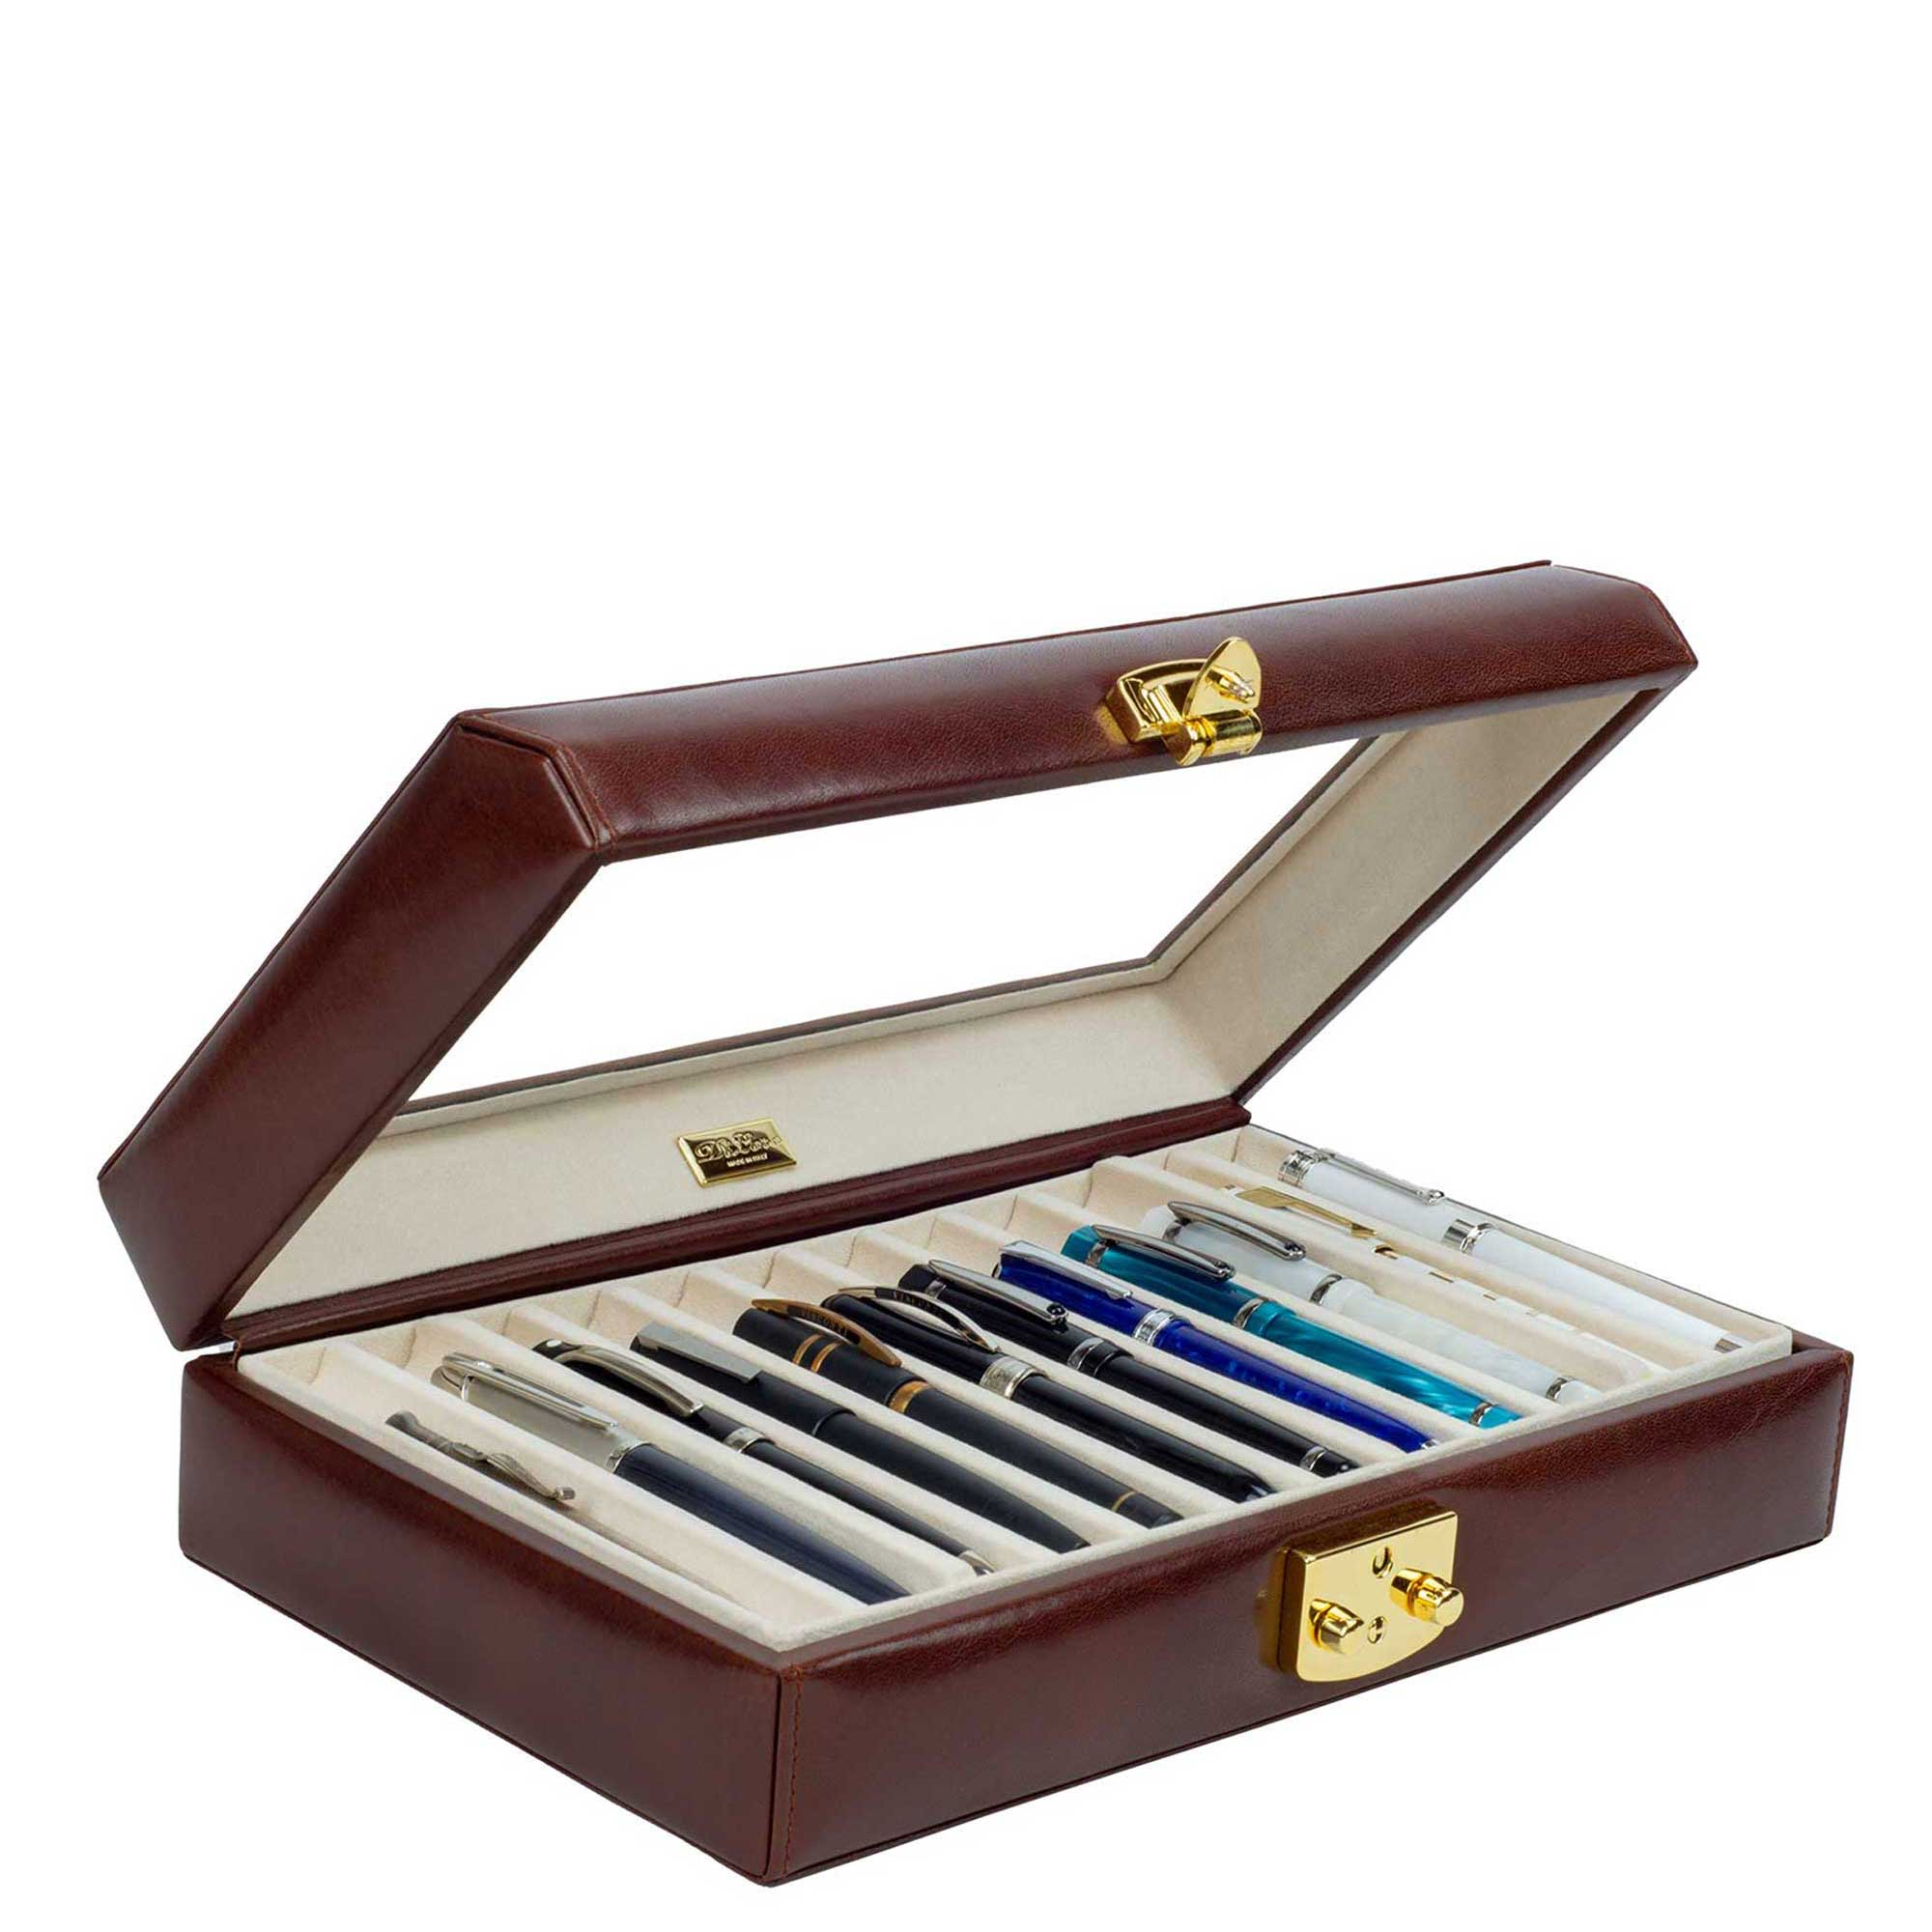 DiLoro Leather Pen Holders Cases Sleeves and more to keep your favorite fountain pen, ballpoint, rollerball or mechanical pencil safe during travel. Top Quality - Swiss Guarantee